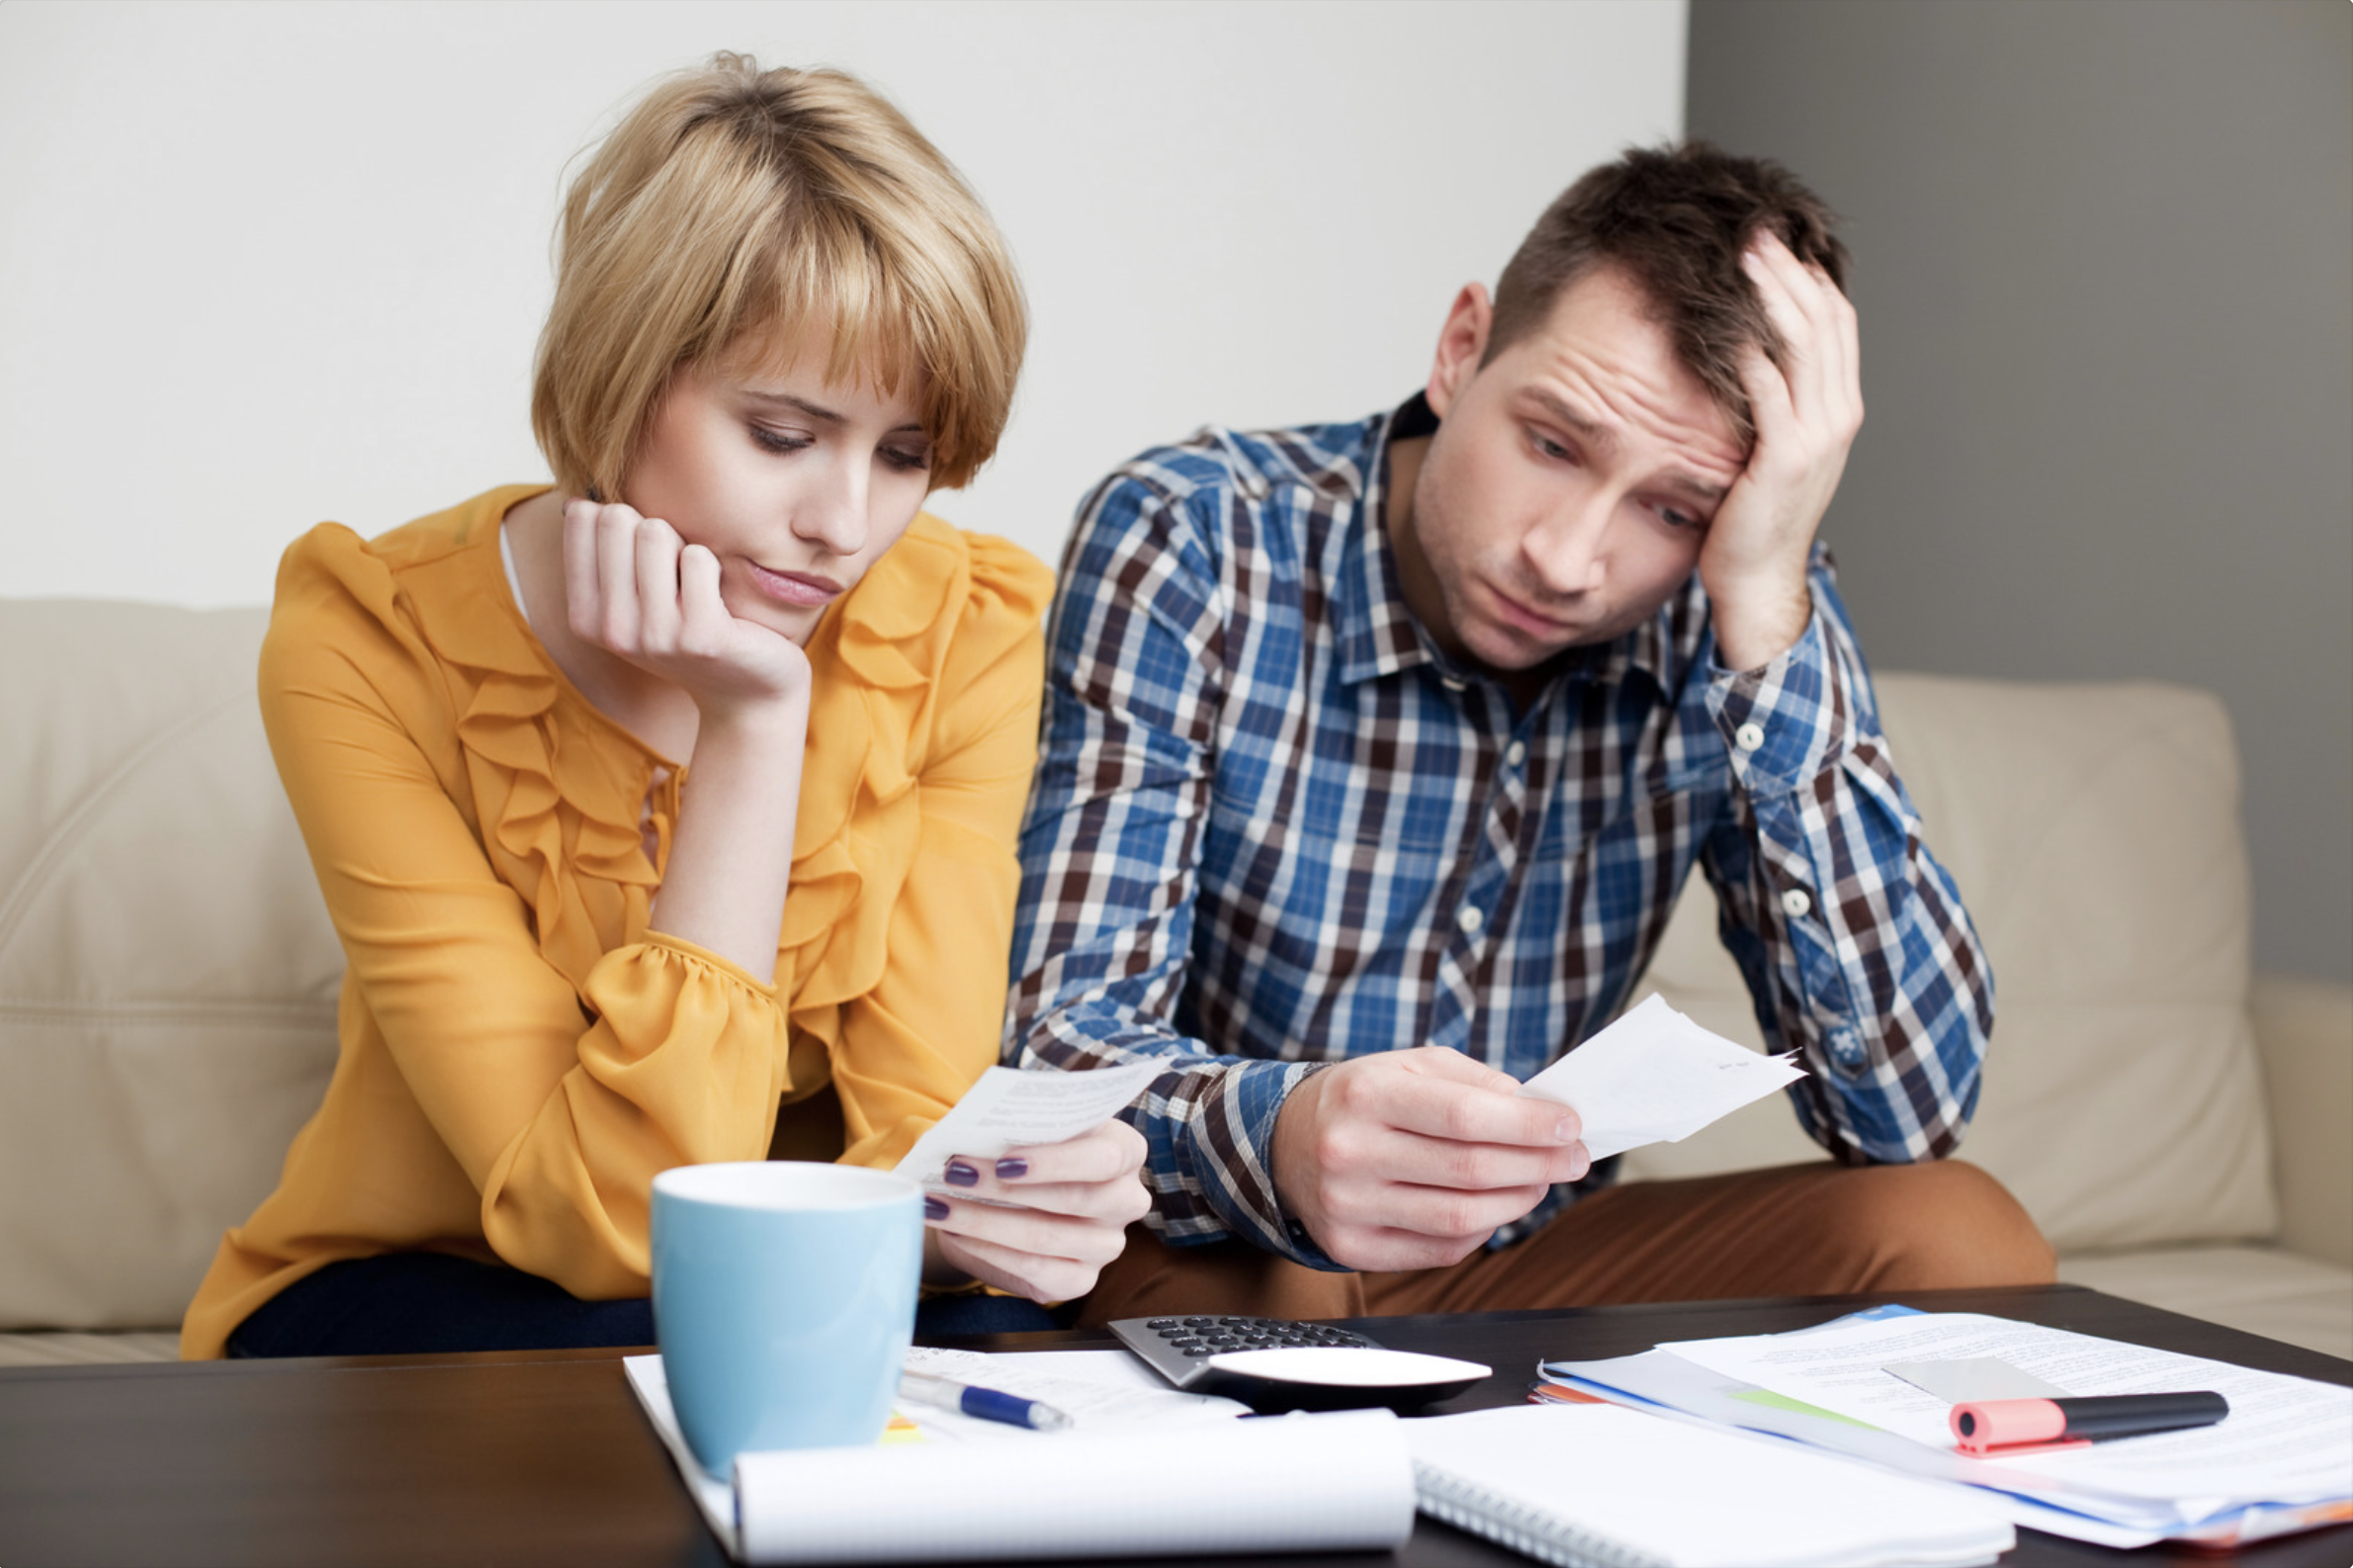 Couple frustrated by bills